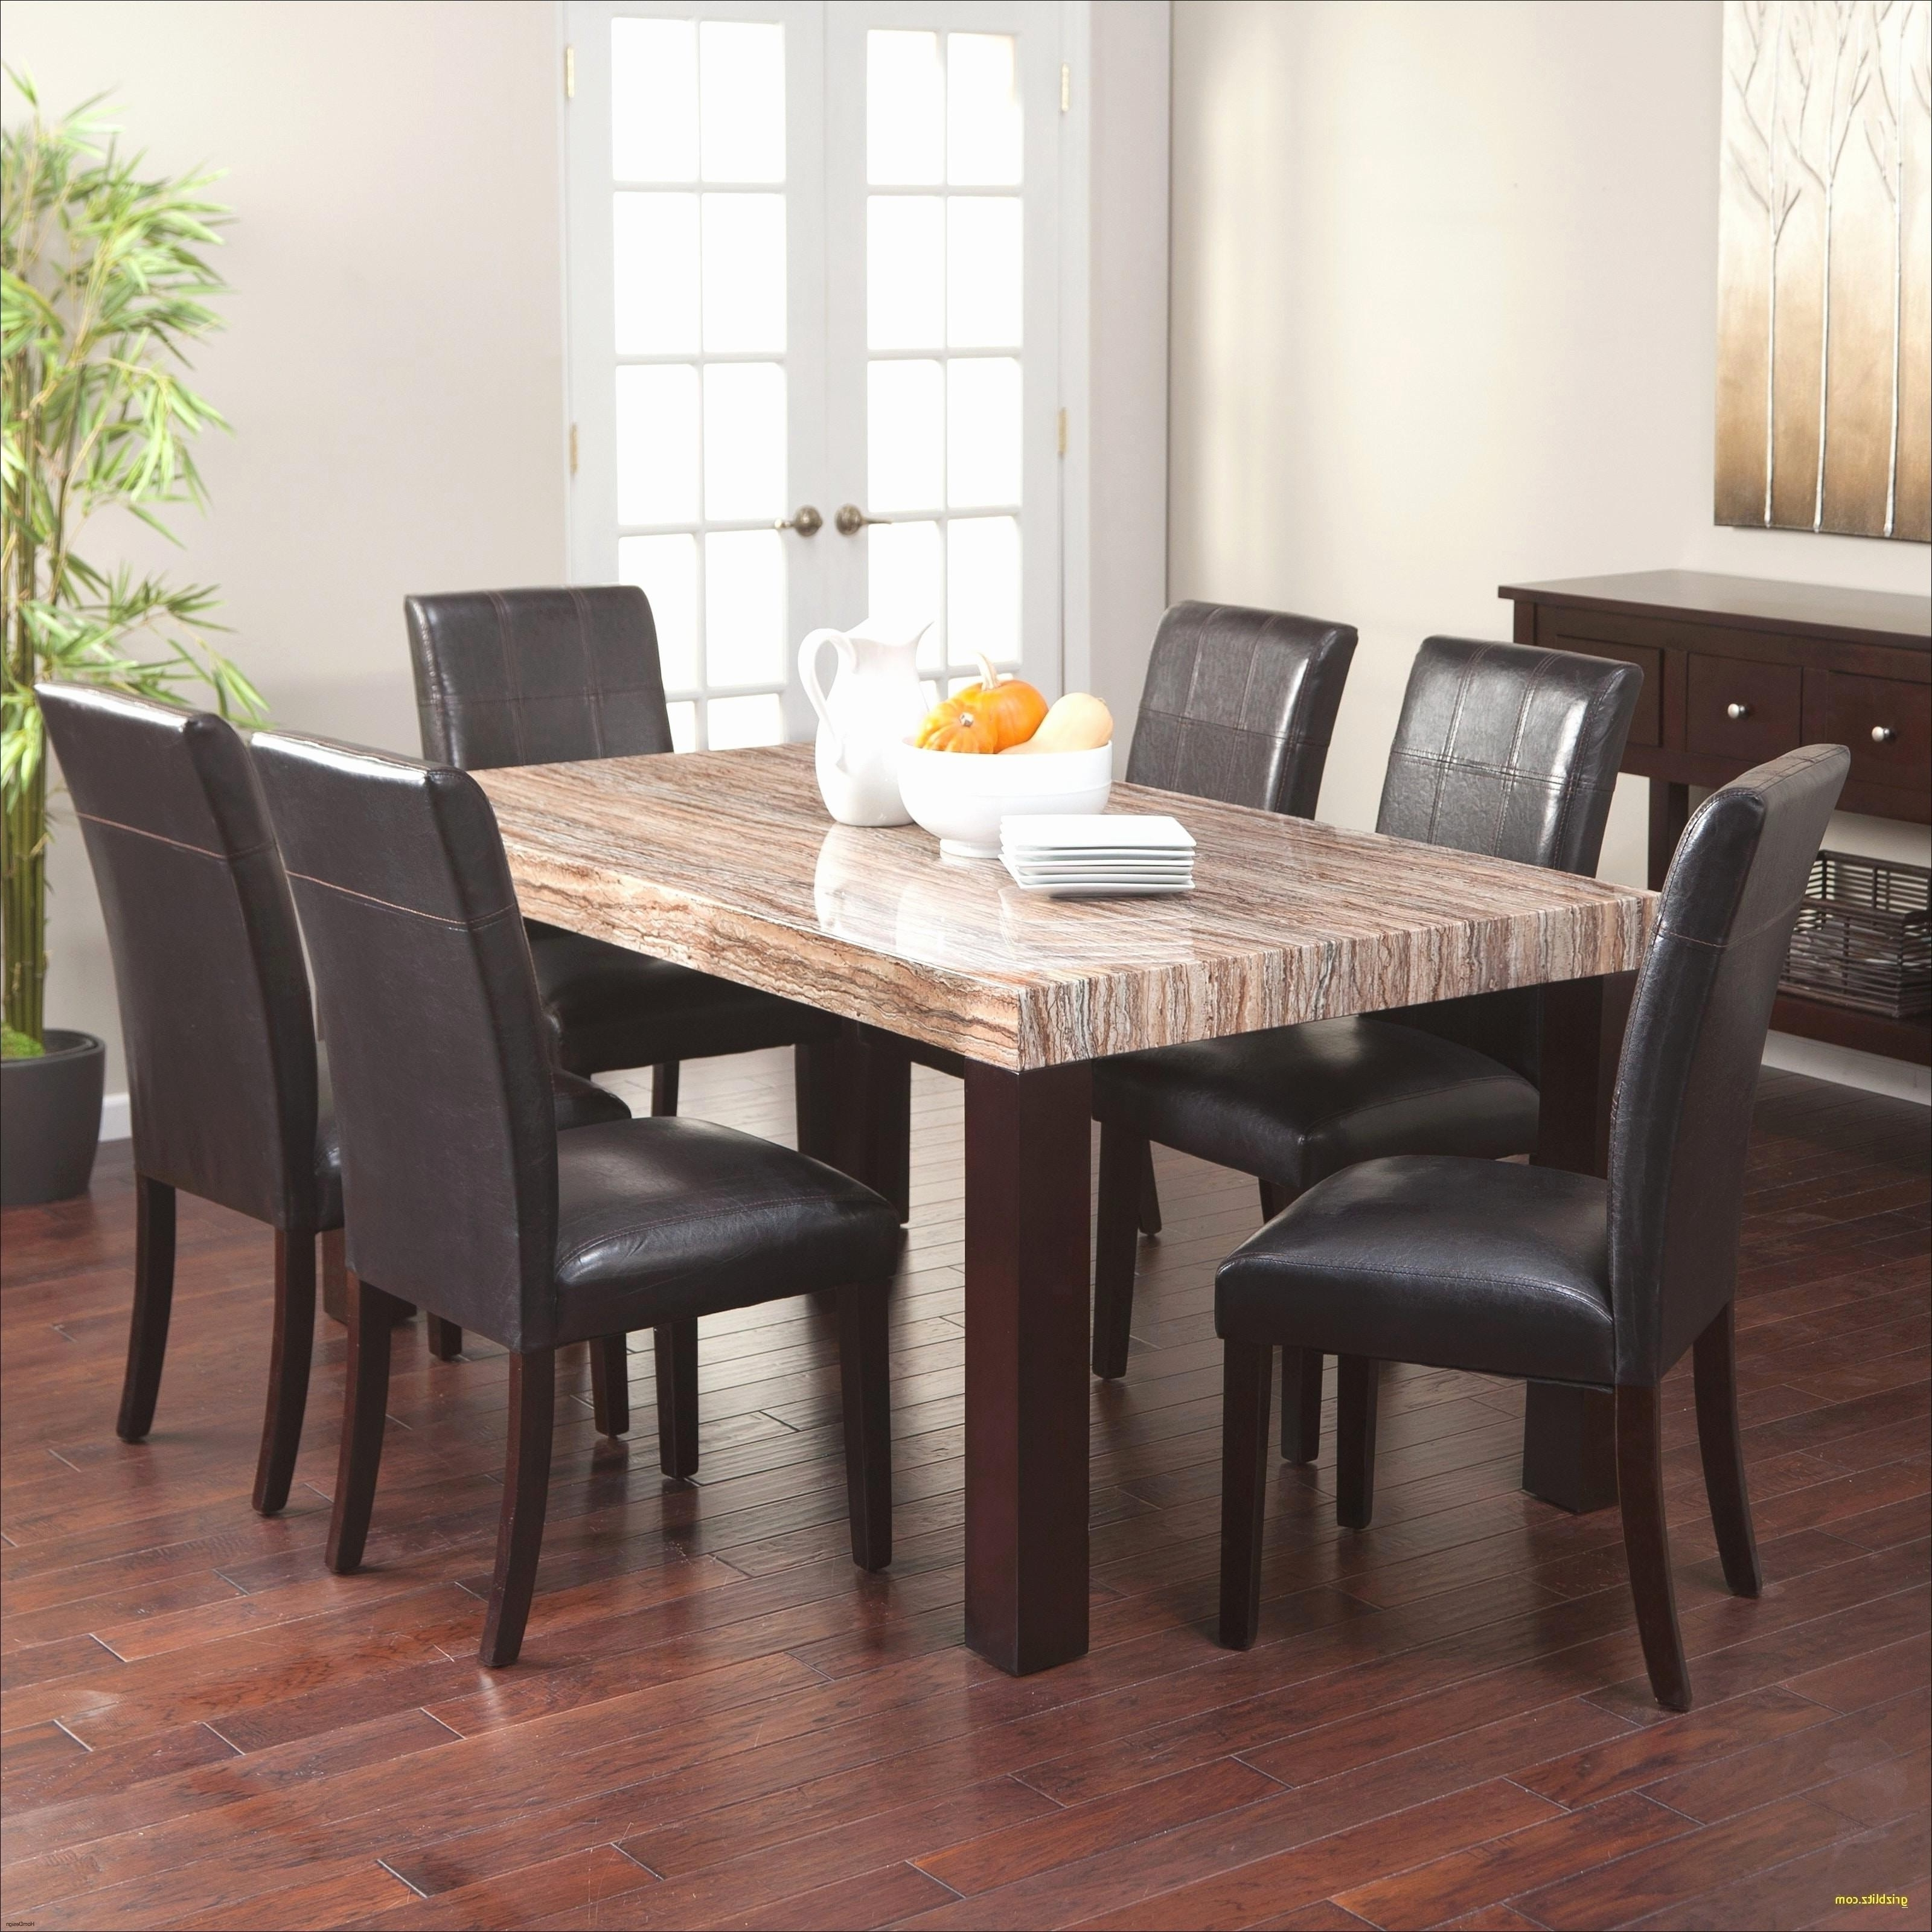 2018 Cheap Dining Tables Sets Inside Round Glass Dining Table Sets For 4 Lovely Cheap Dining Room Tables (View 11 of 25)